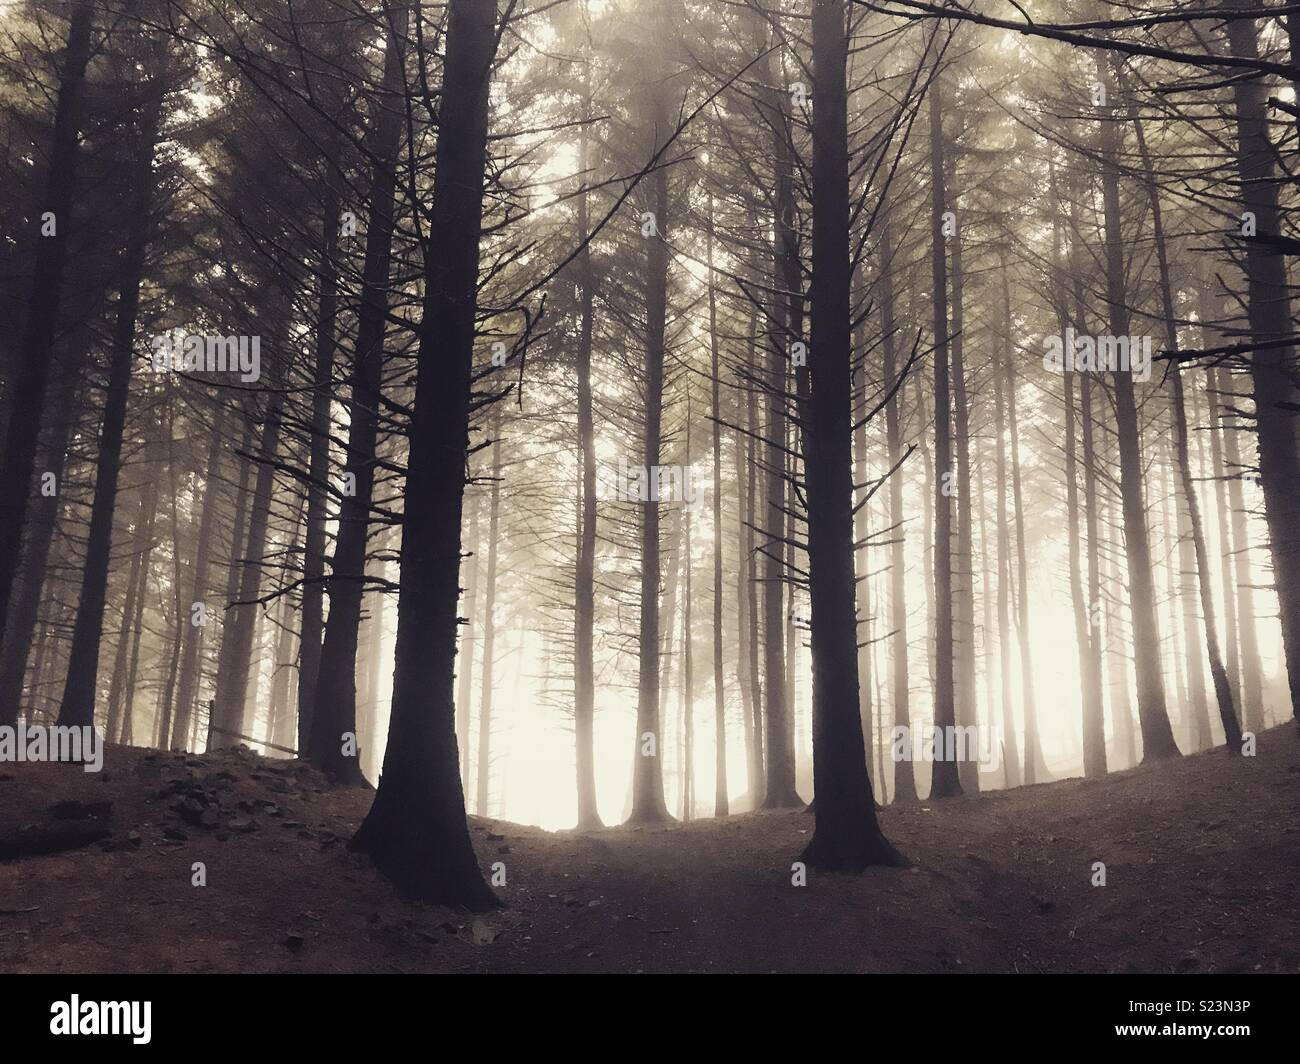 Macclesfield forest - Stock Image